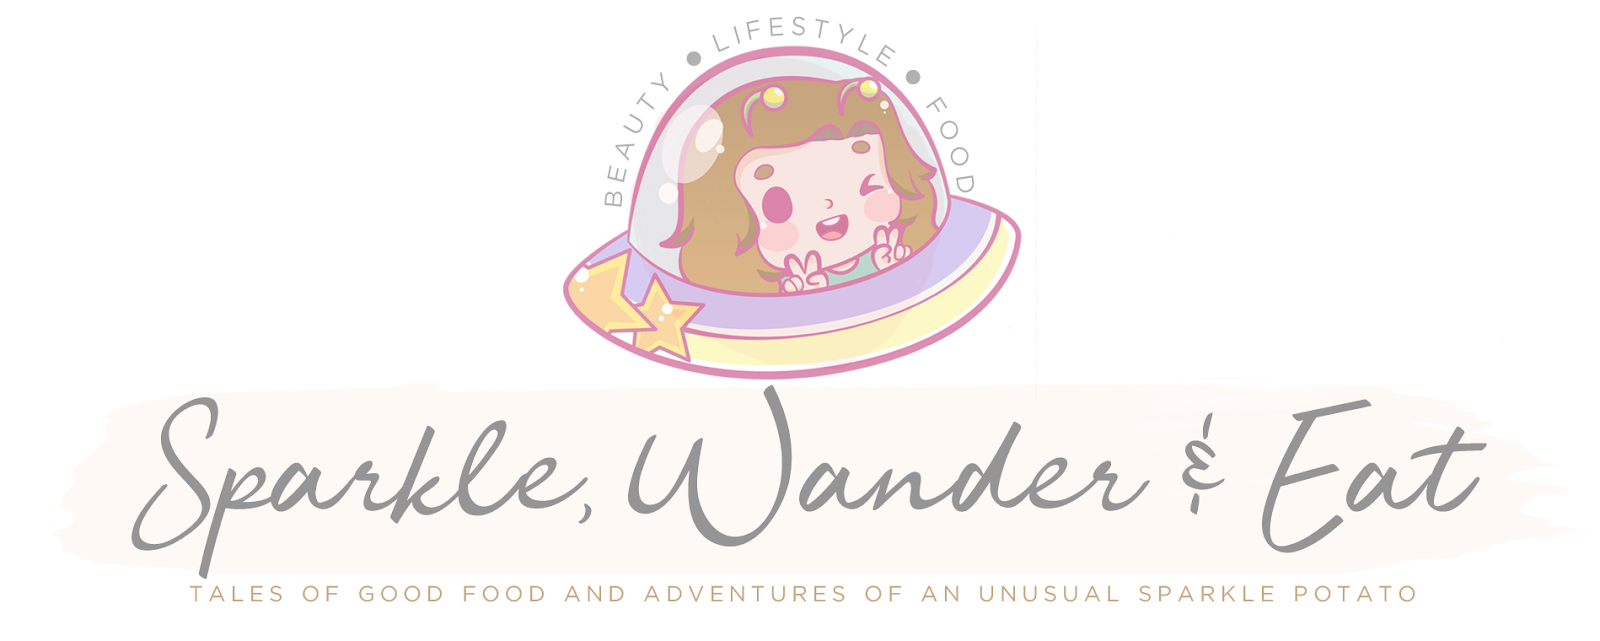 Sparkle, Wander and Eat | Beauty, Lifestyle and Food